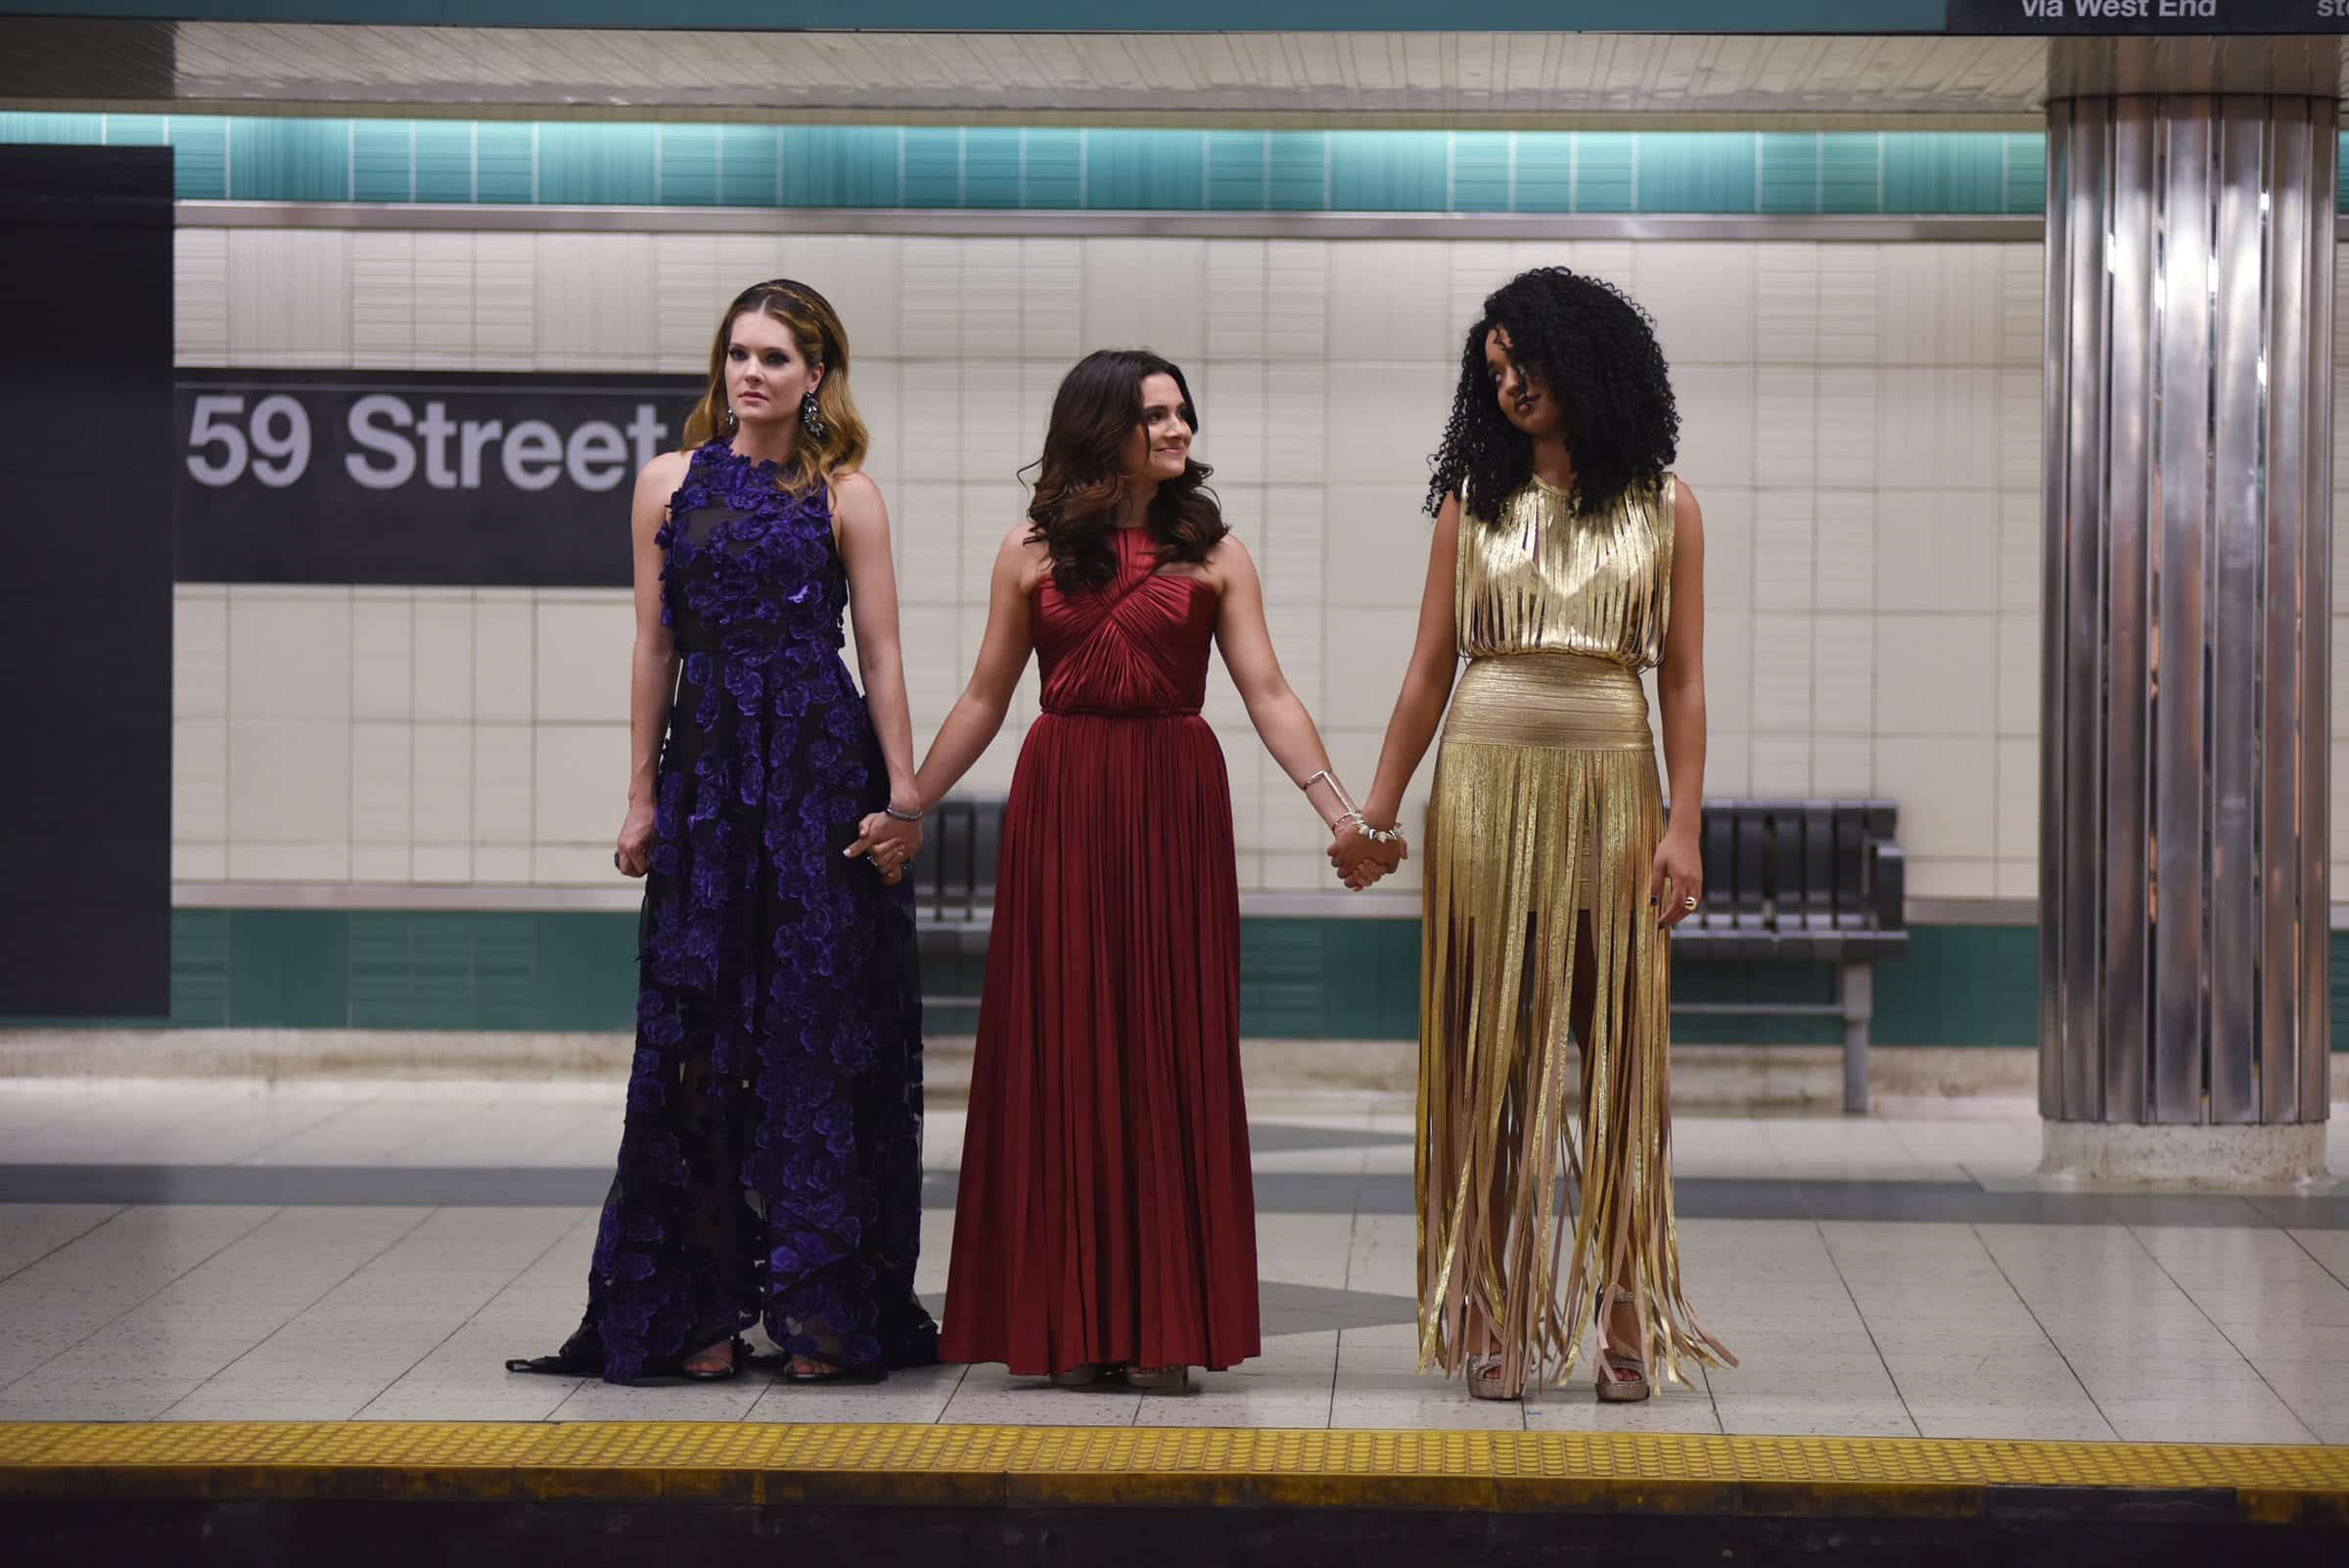 'The Bold Type' is the newest original series targeted towards the yillenial (14- to 35-year-old) demographic from Freeform (a Disney subsidiary).